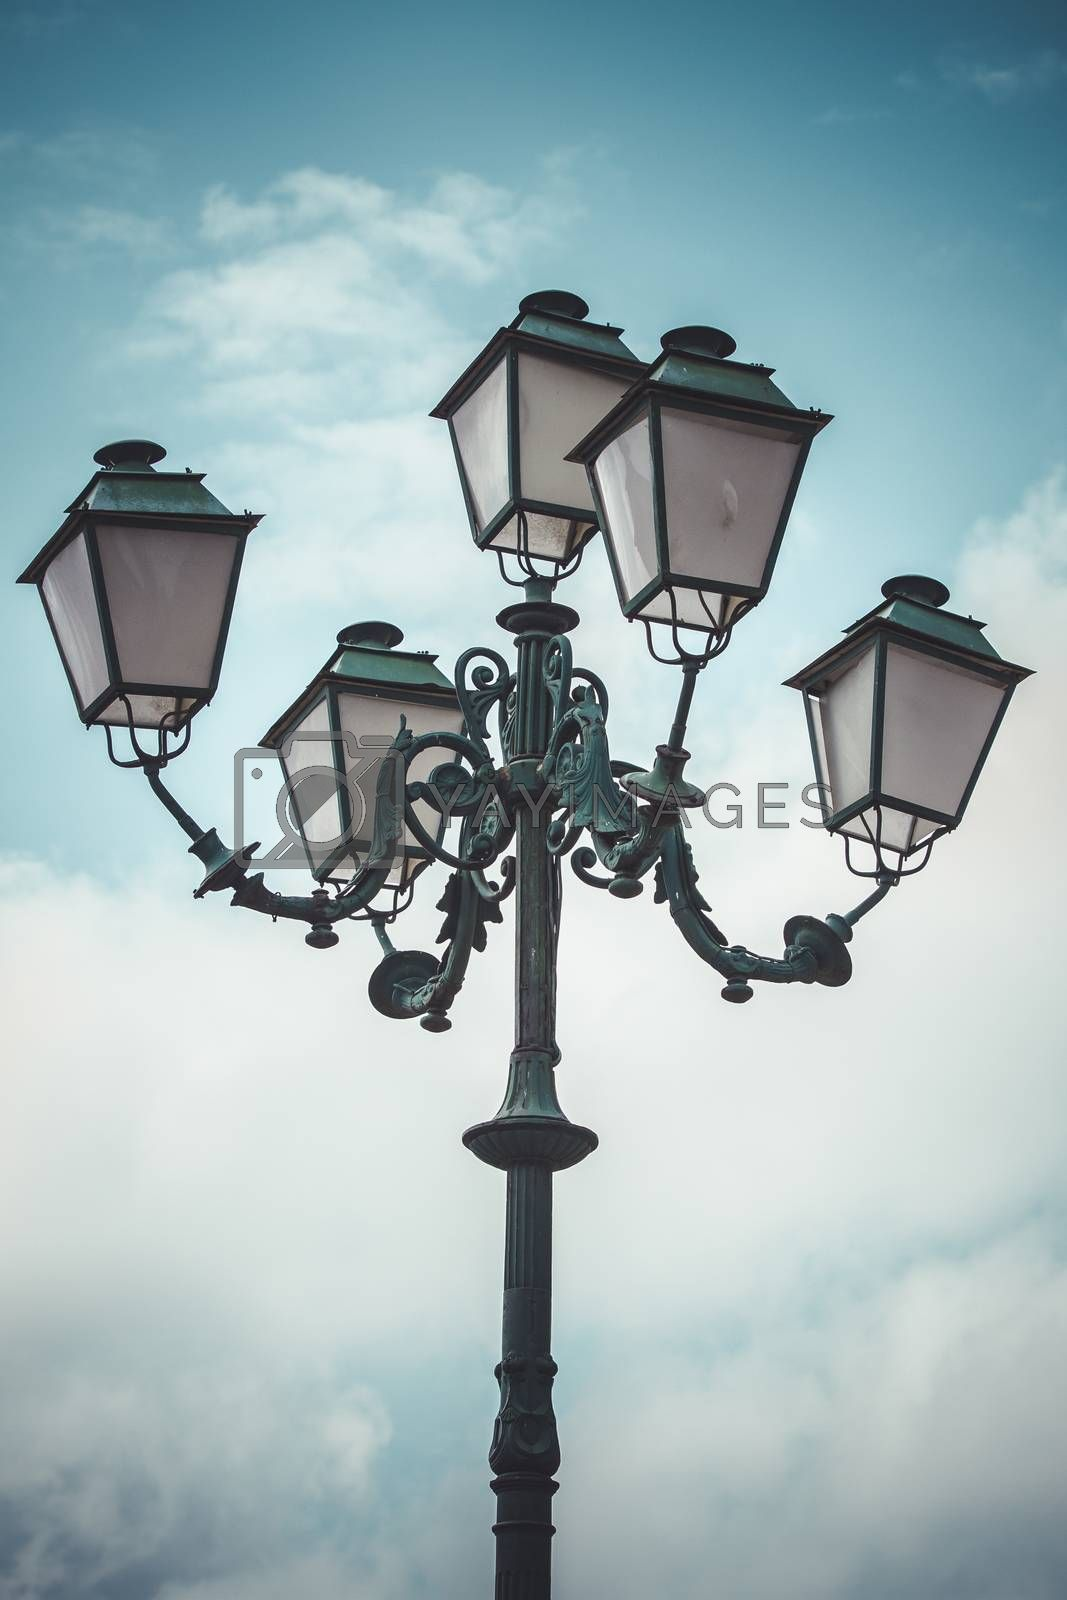 vertical, traditional street lamp with decorative metal flourishes